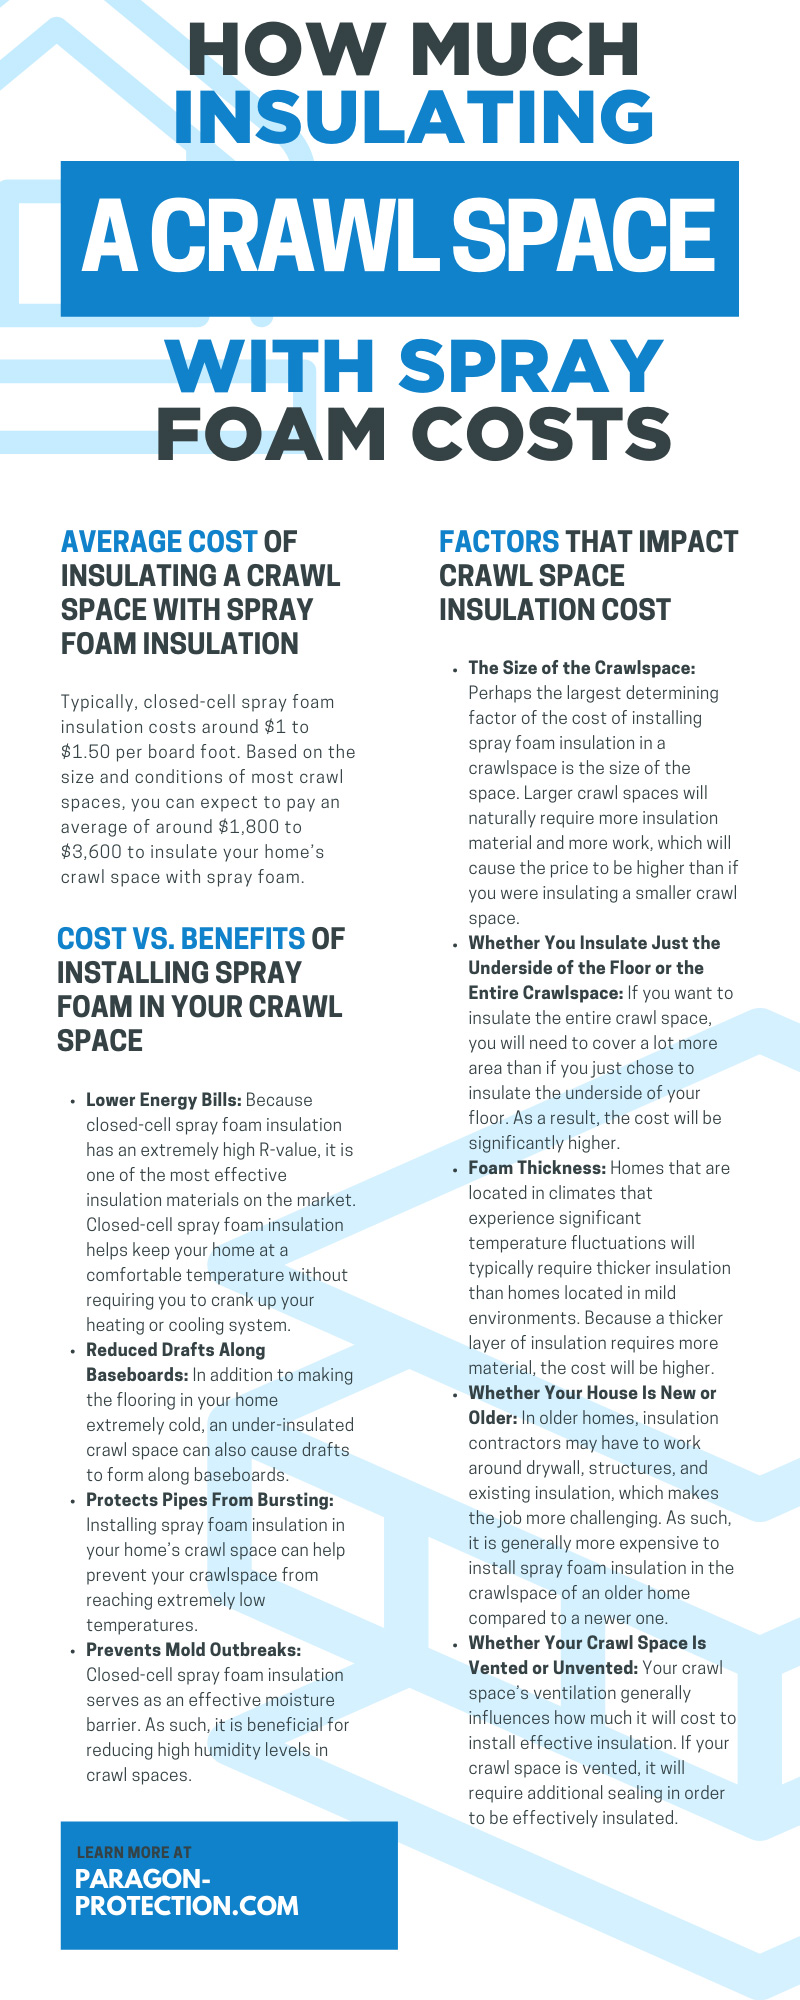 How Much Insulating a Crawl Space With Spray Foam Costs